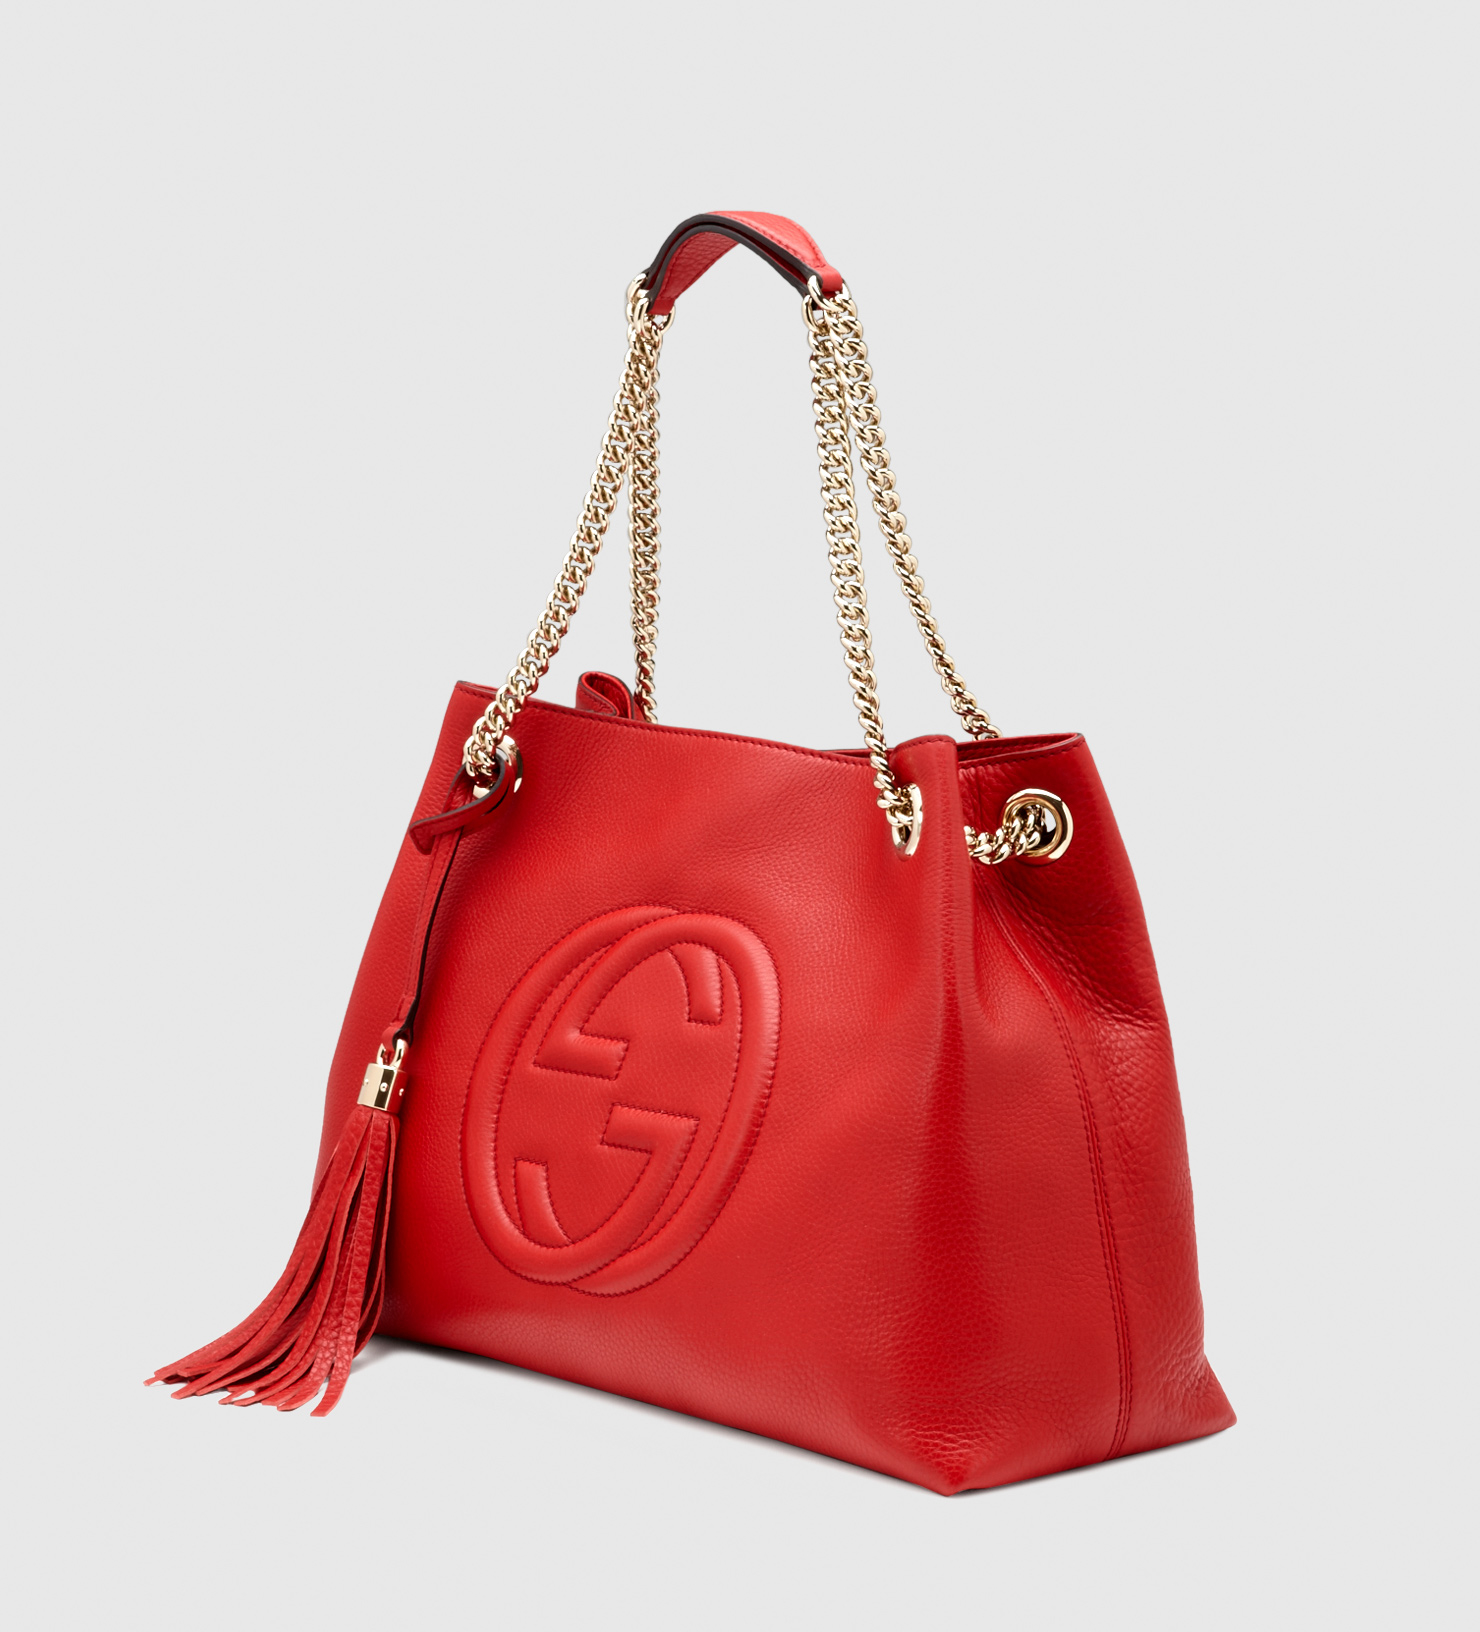 c005ae16f1377 Gucci Soho Leather Shoulder Bag in Red - Lyst